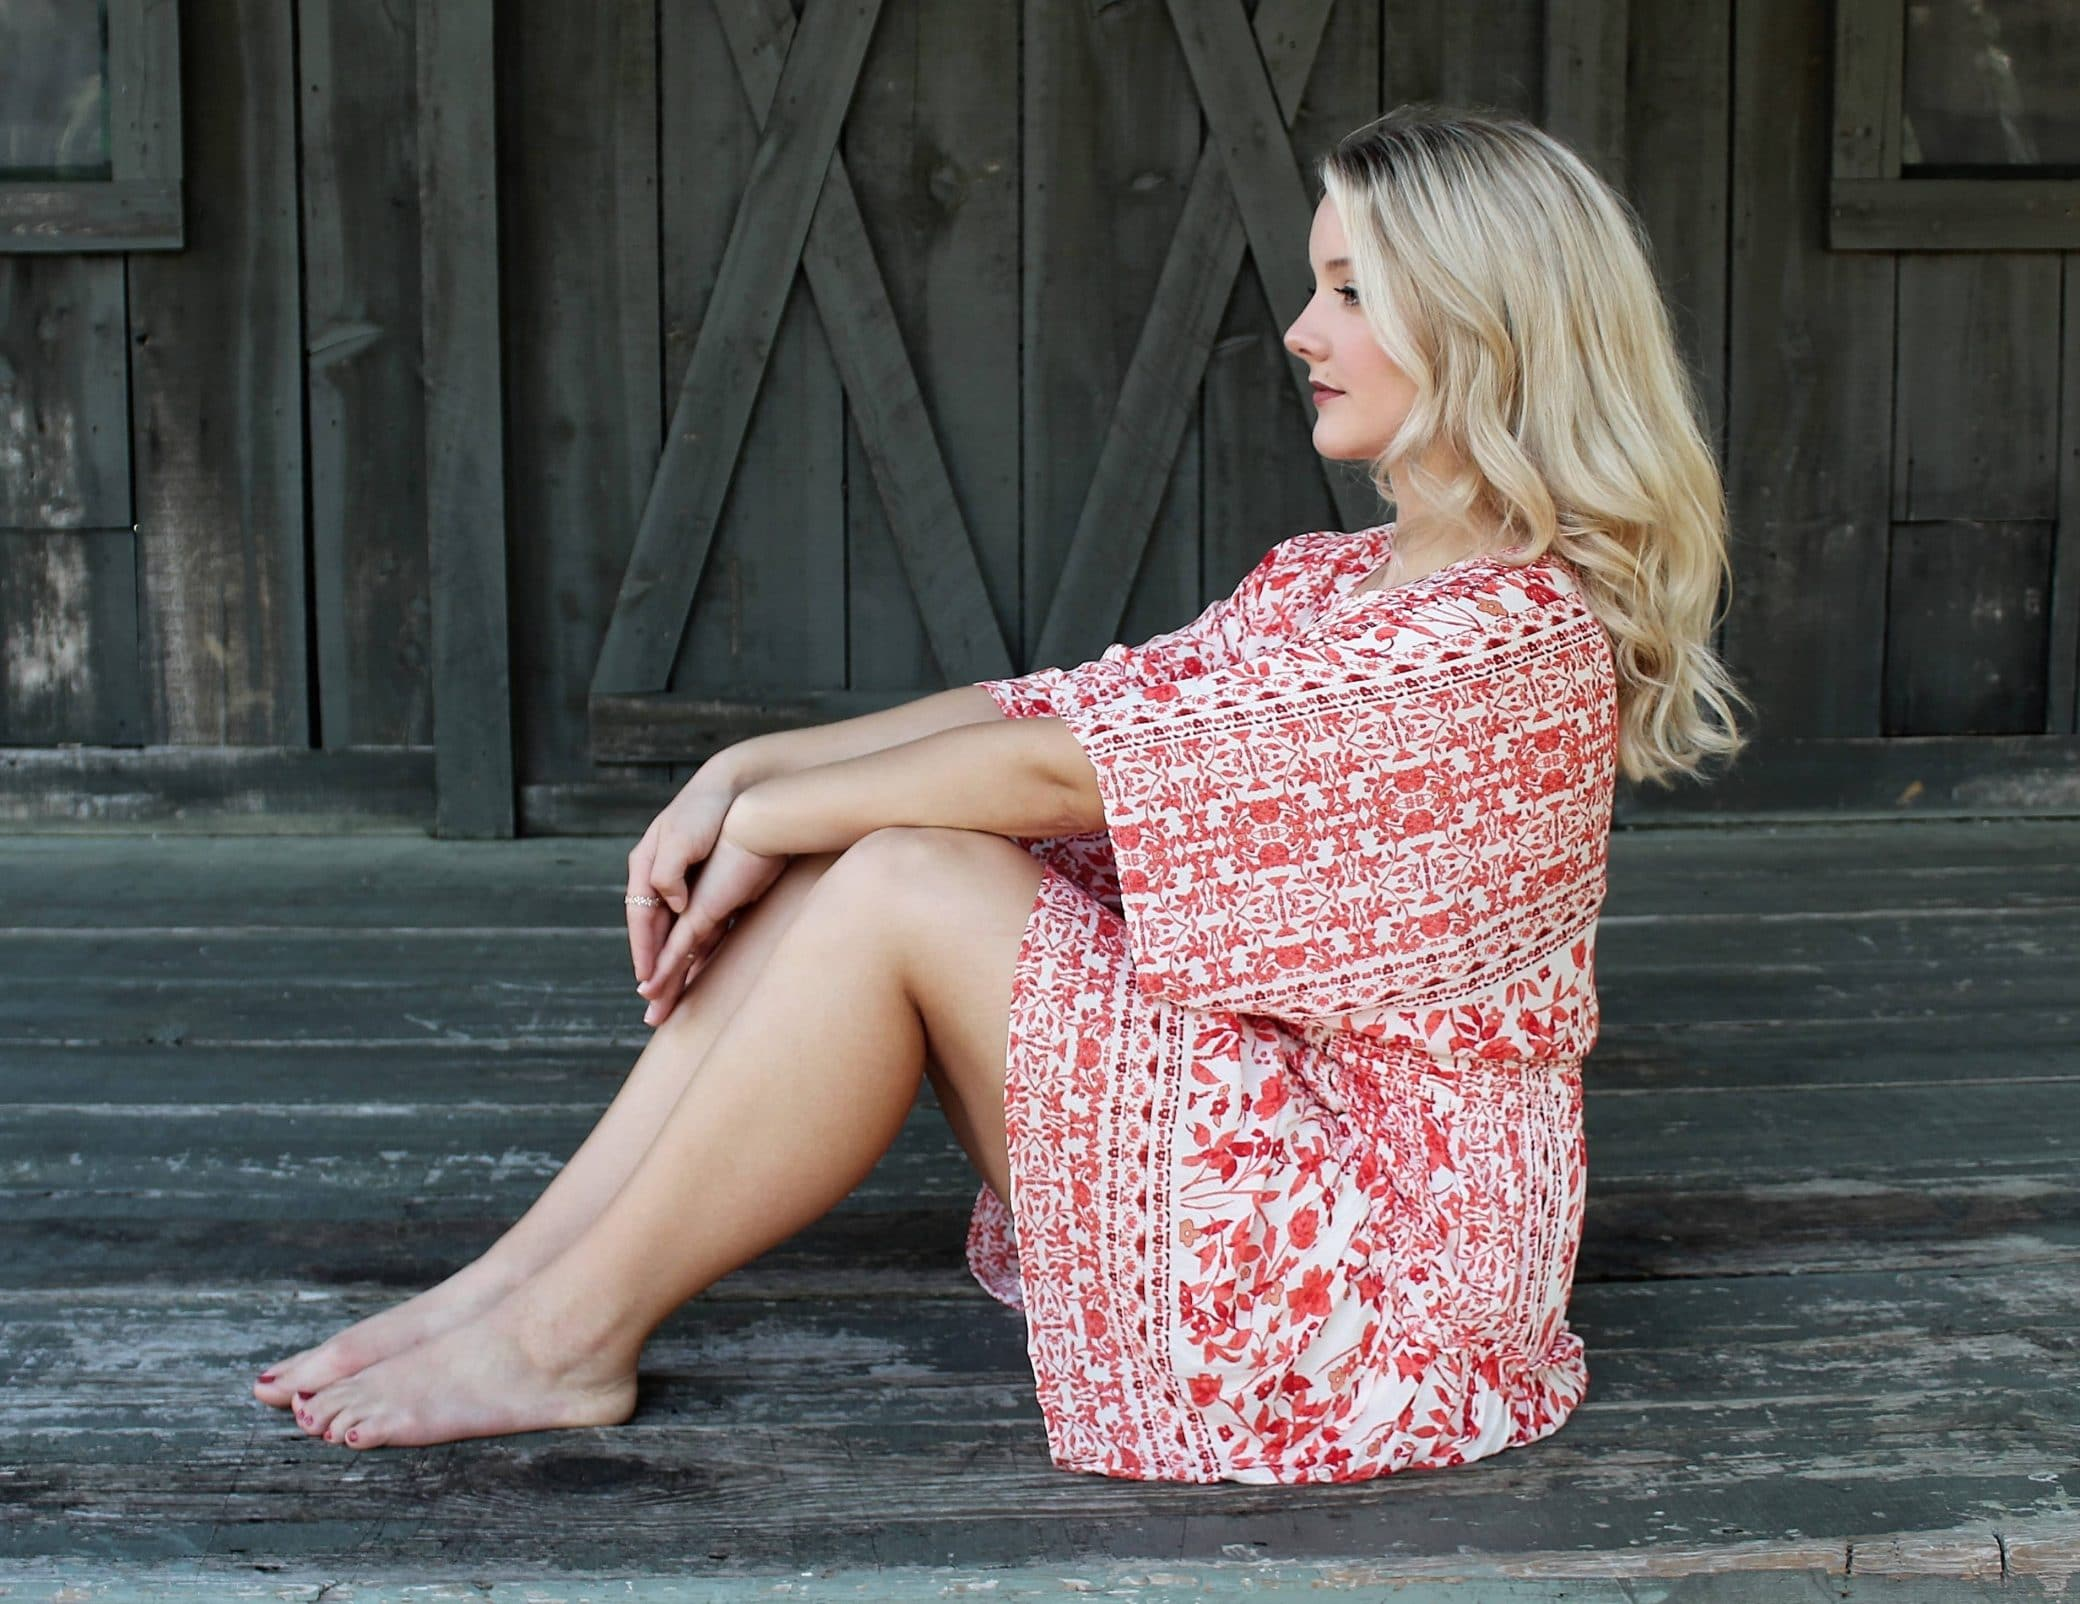 Beautiful blonde woman sitting wearing a summer dress showing her bare legs and feet